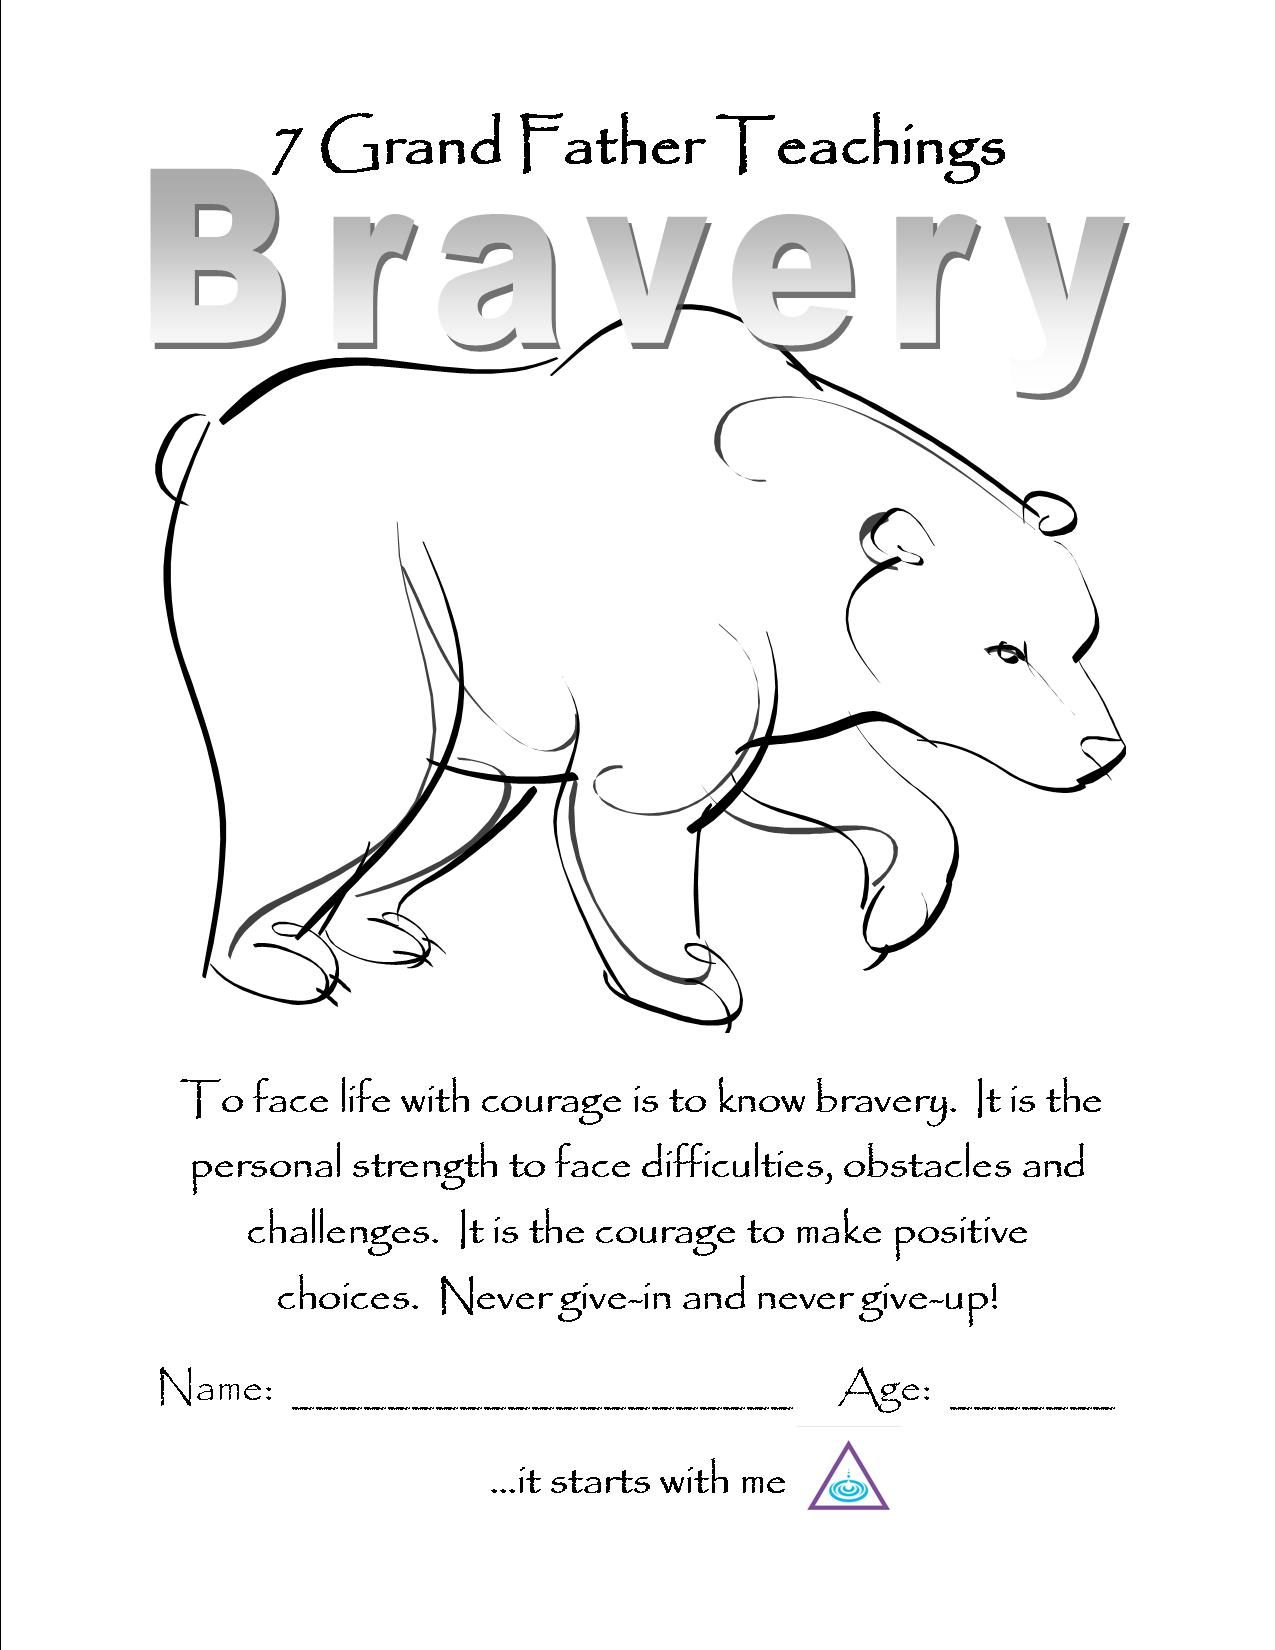 Environmental coloring activities - Bravery Color Page